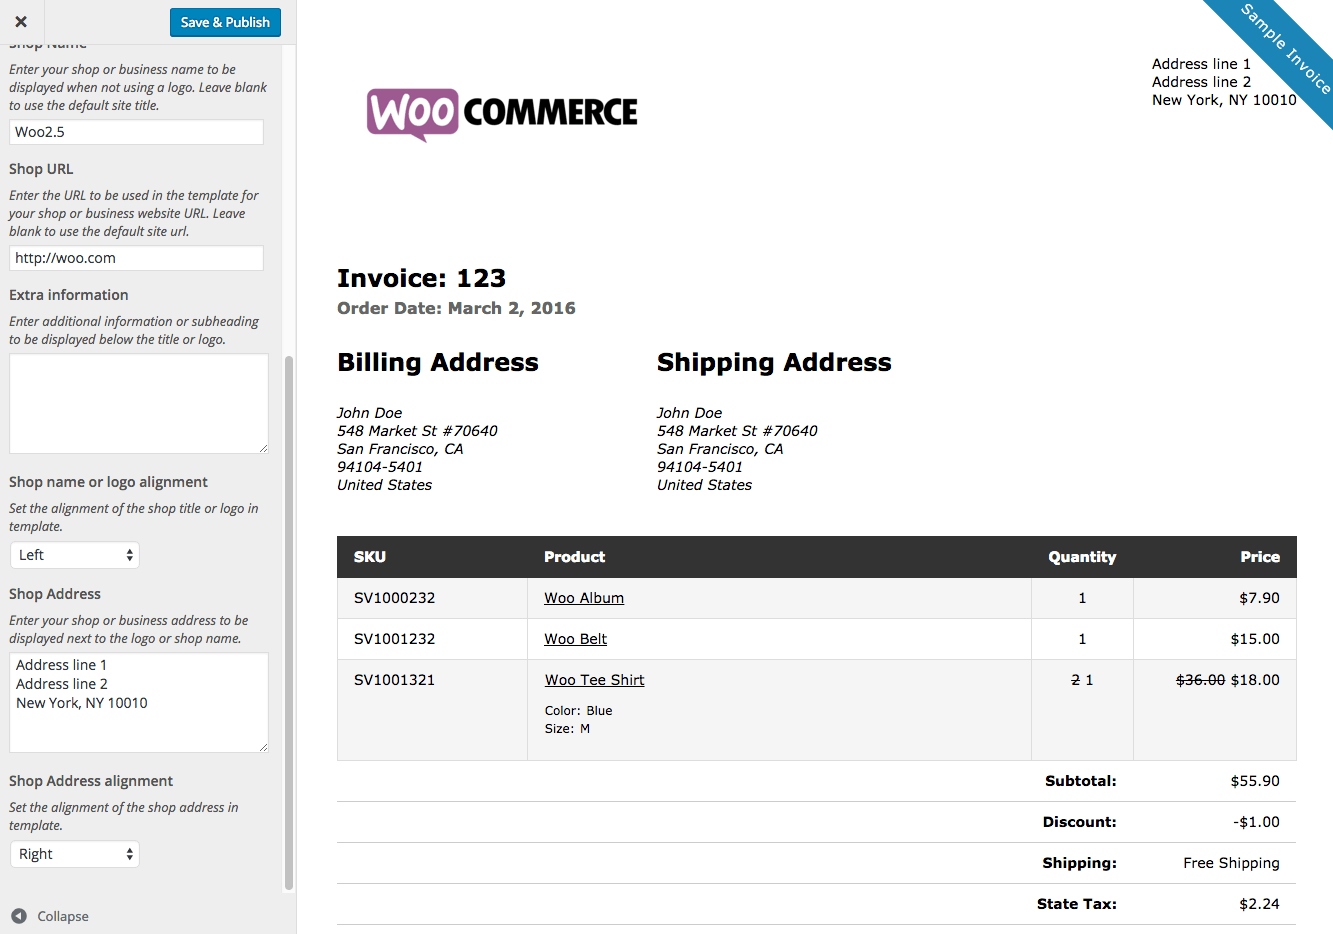 Maidofhonortoastus  Winsome Woocommerce Print Invoices Amp Packing Lists  Woocommerce Docs With Foxy Woocommerce Print Invoices  Packing Lists Customizer With Alluring Ford Focus Invoice Also Dealer Invoice On New Cars In Addition Used Vehicle Invoice And Invoice Layout Example As Well As Expenses Invoice Template Additionally Create A Tax Invoice From Docswoocommercecom With Maidofhonortoastus  Foxy Woocommerce Print Invoices Amp Packing Lists  Woocommerce Docs With Alluring Woocommerce Print Invoices  Packing Lists Customizer And Winsome Ford Focus Invoice Also Dealer Invoice On New Cars In Addition Used Vehicle Invoice From Docswoocommercecom